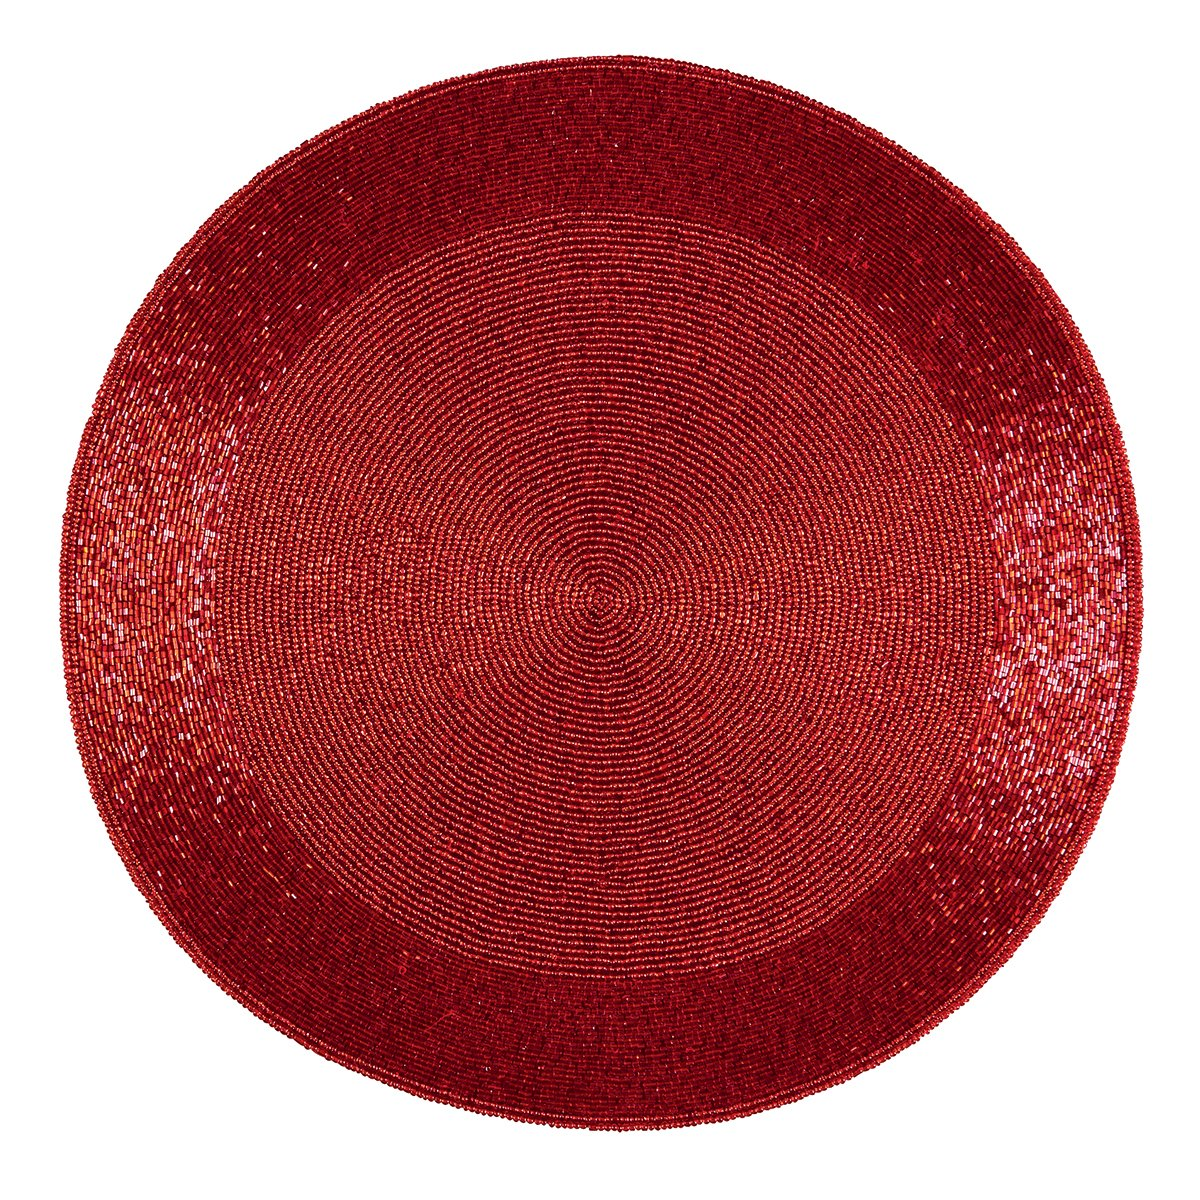 Coastal Christmas Tablescape Décor - Red beaded round placemats - Set of 4